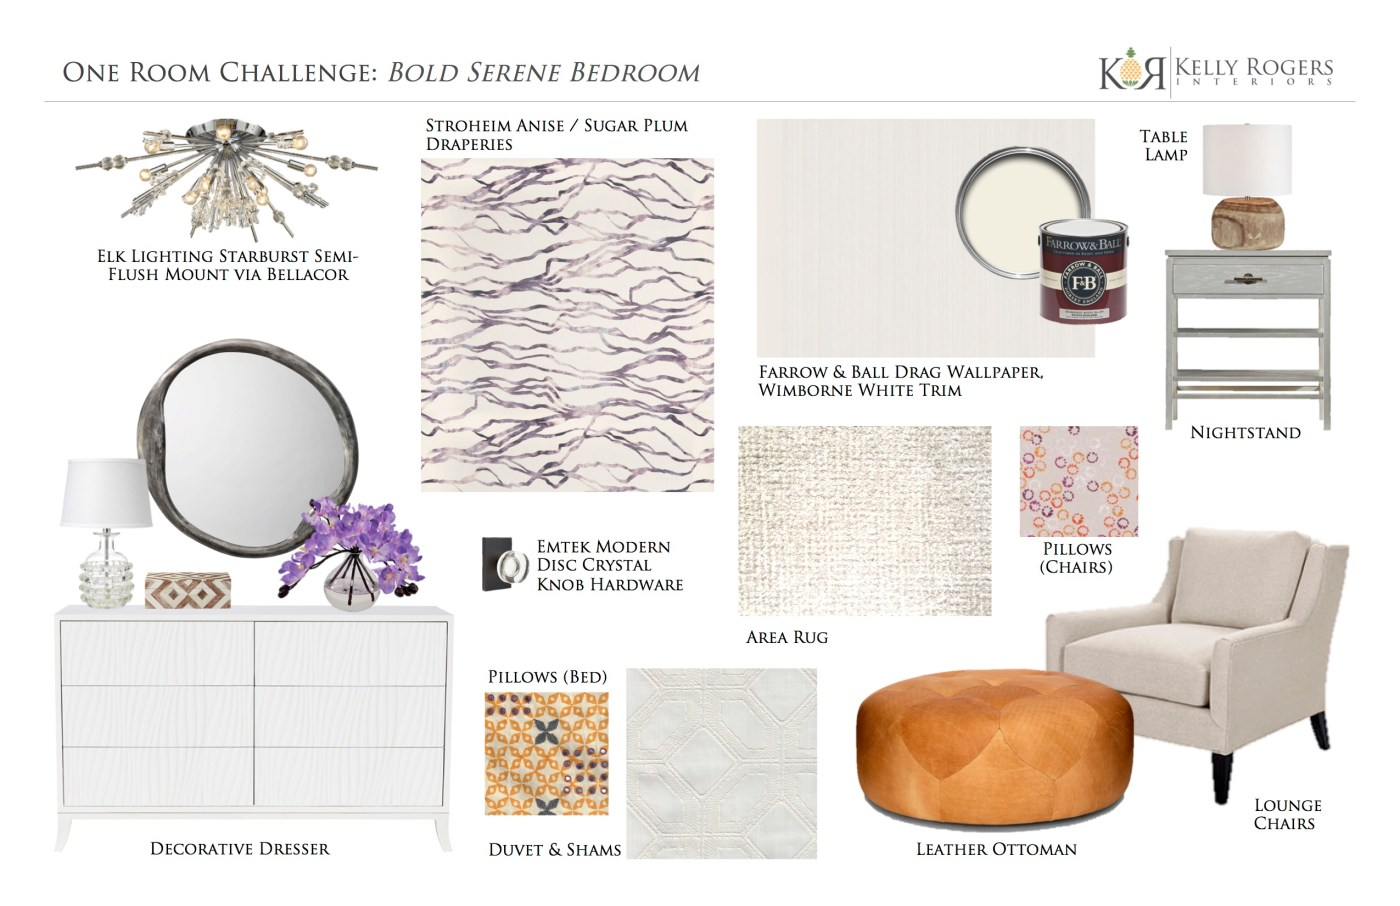 One Room Challenge Week 1: Bold Serene Bedroom